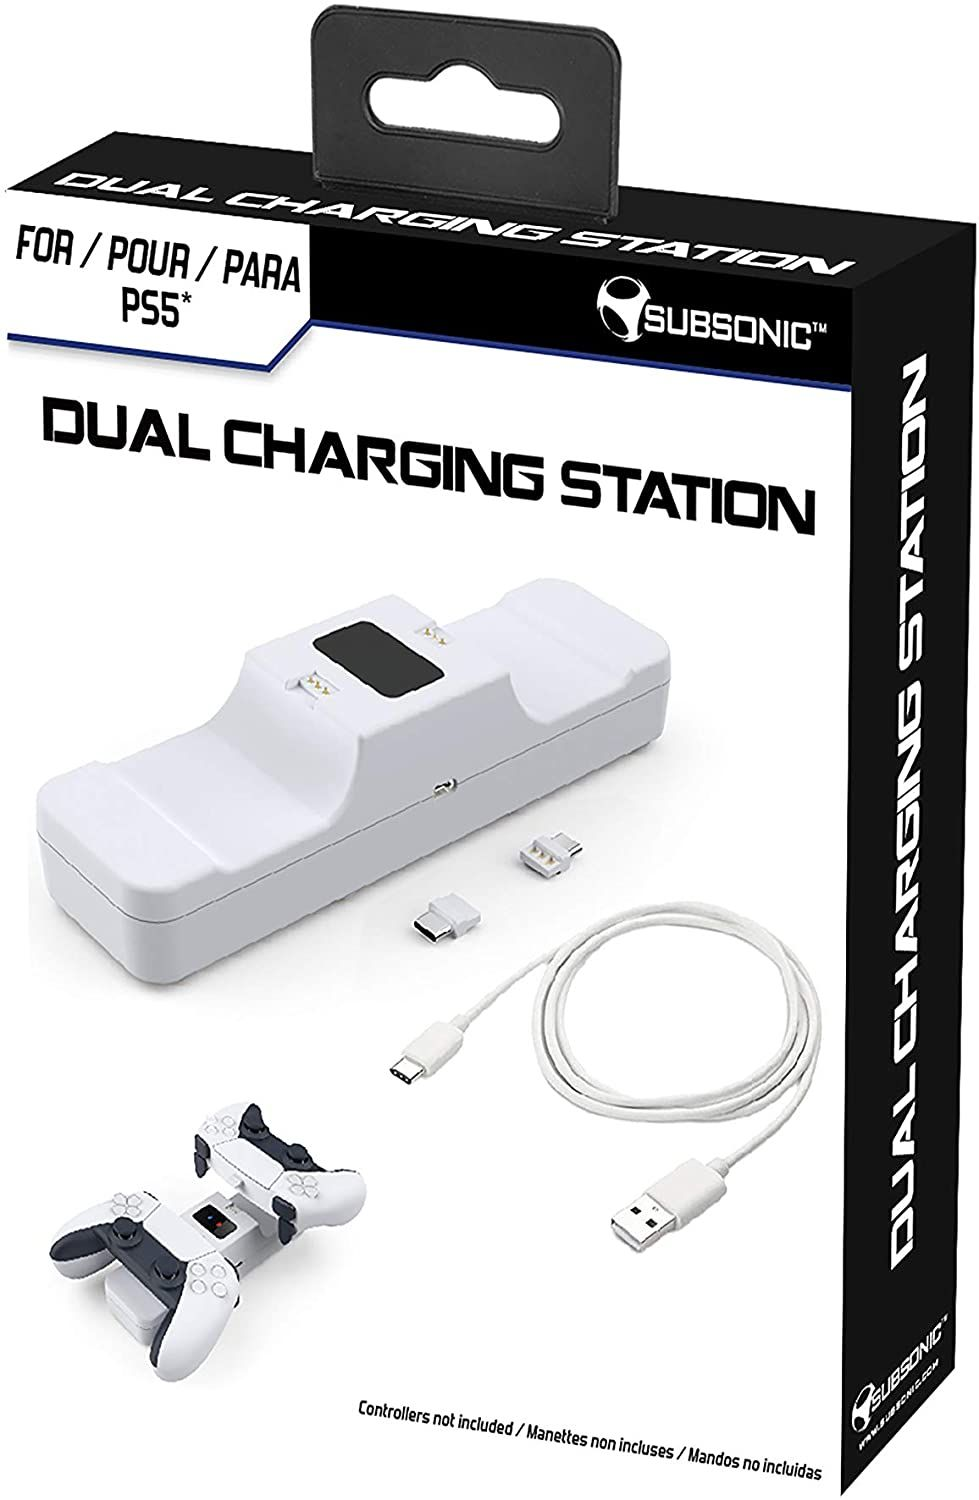 Subsonic Dual Charging Station for Playstation 5 Controller (PS5)